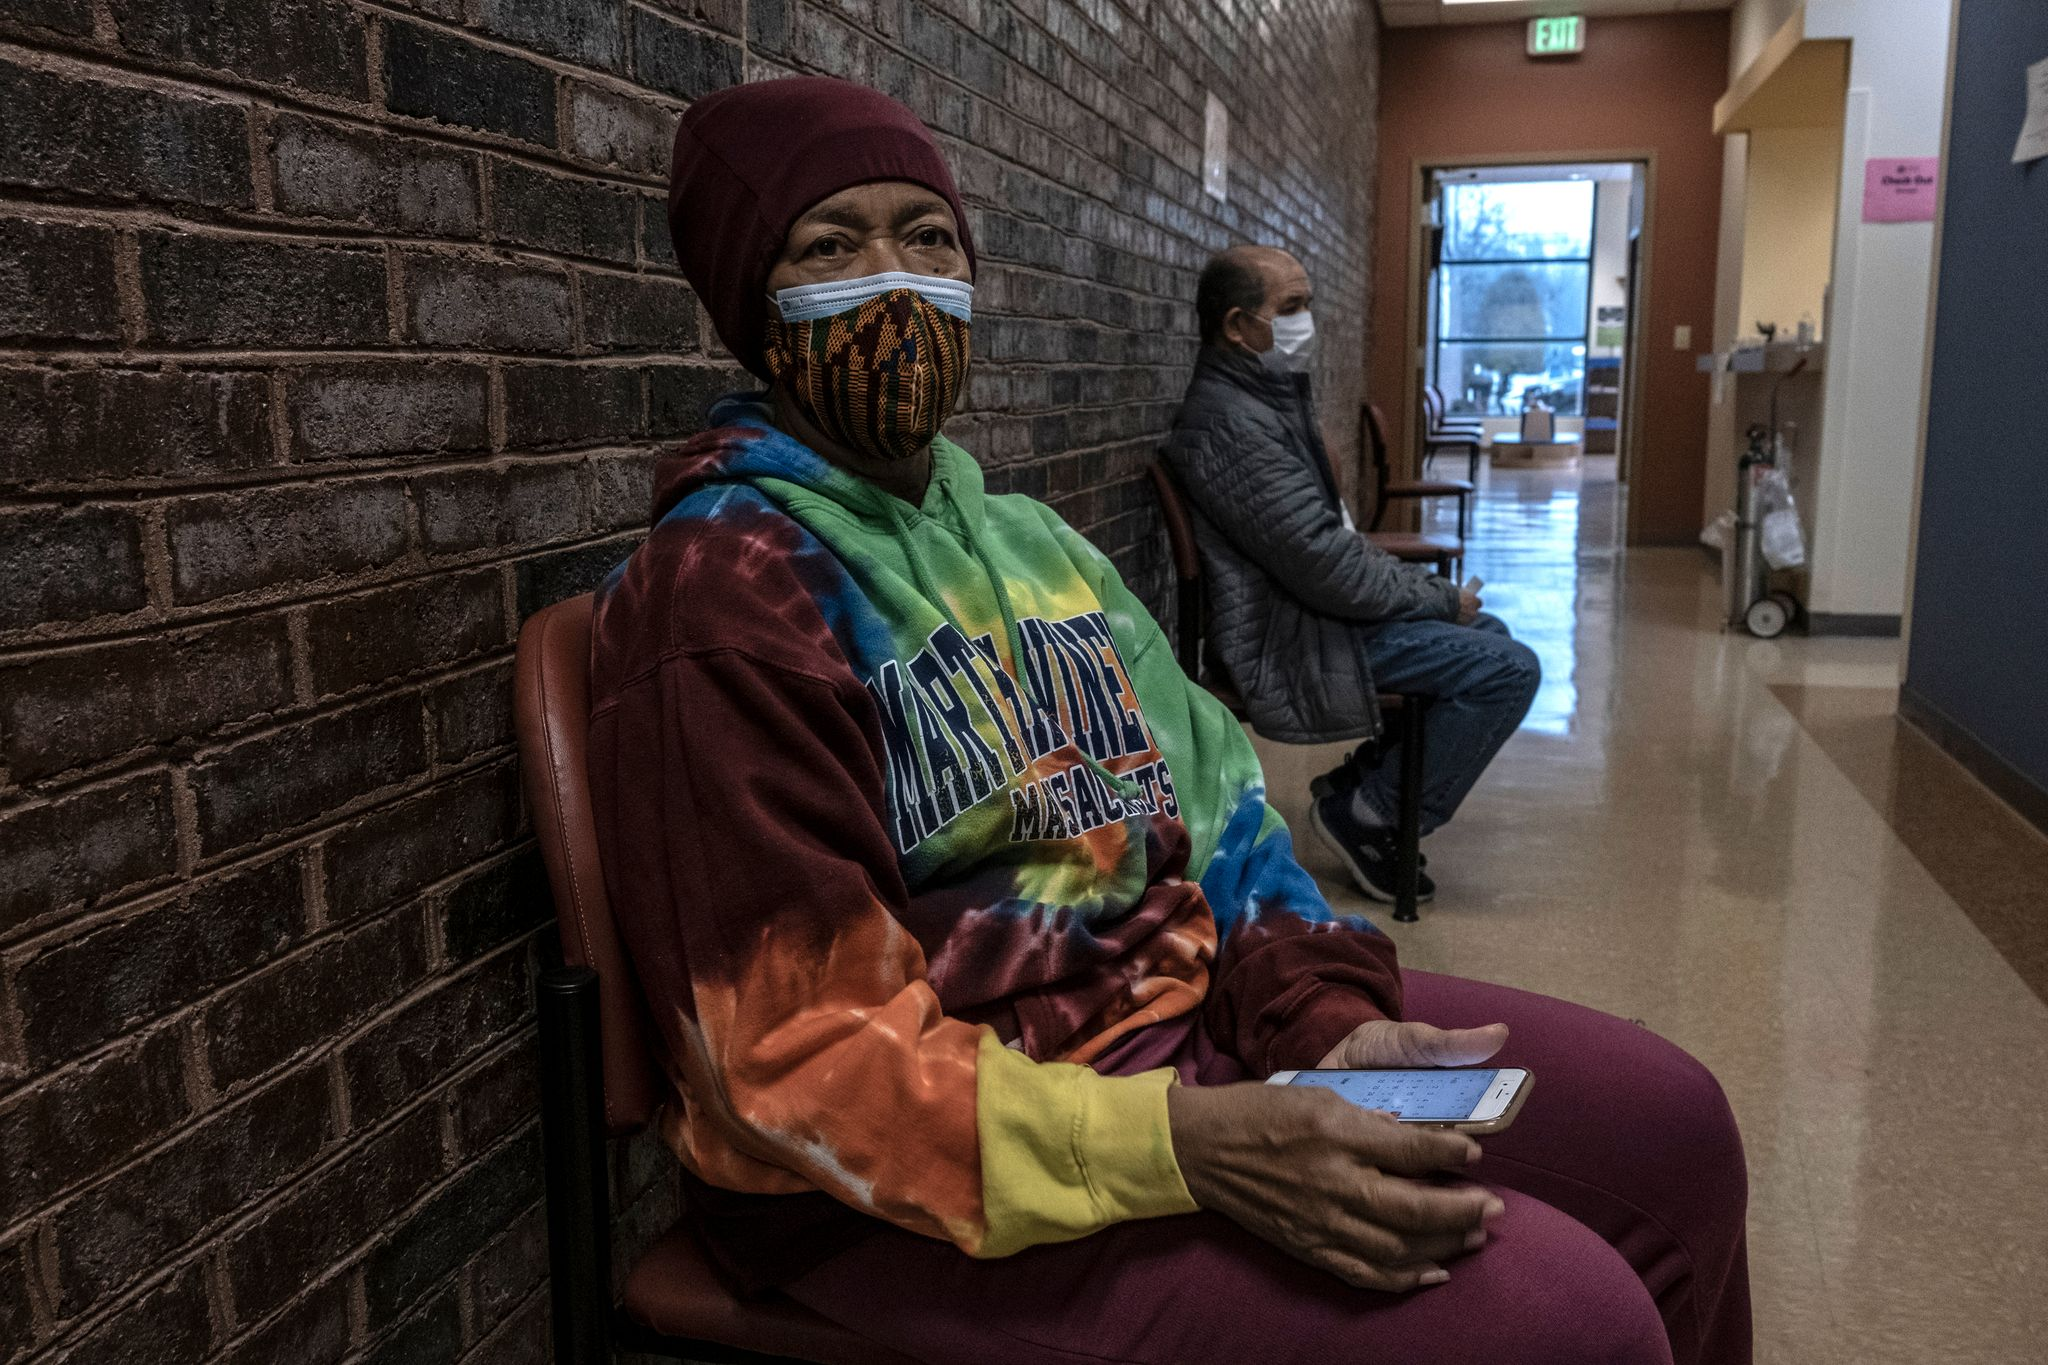 An analysis from the Center on Budget and Policy Priorities found that Black Tennesseans and essential workers are disproportionately affected by the legislature's failure to take federal funds to Medicaid. (Photo: John Partipilo)